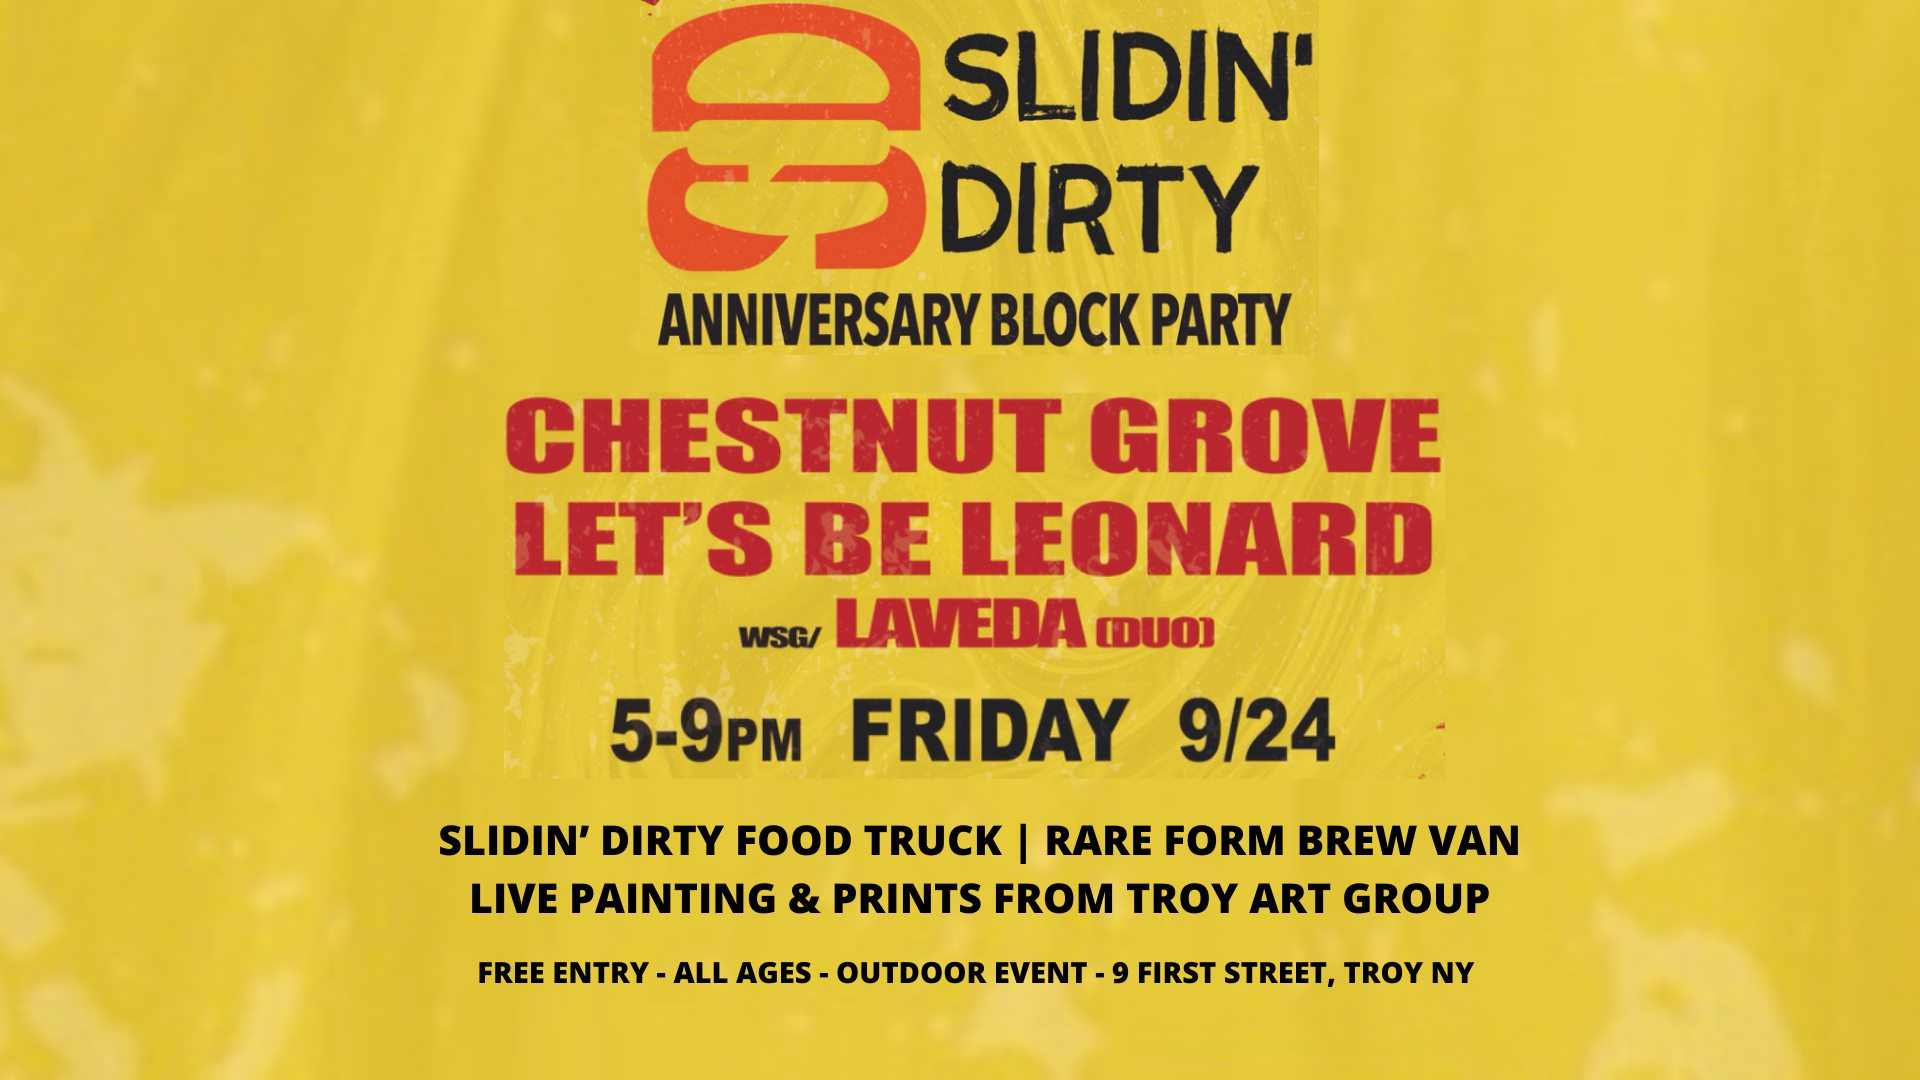 Slidin' Dirty Set To Throw Anniversary Block Party in Troy, NY